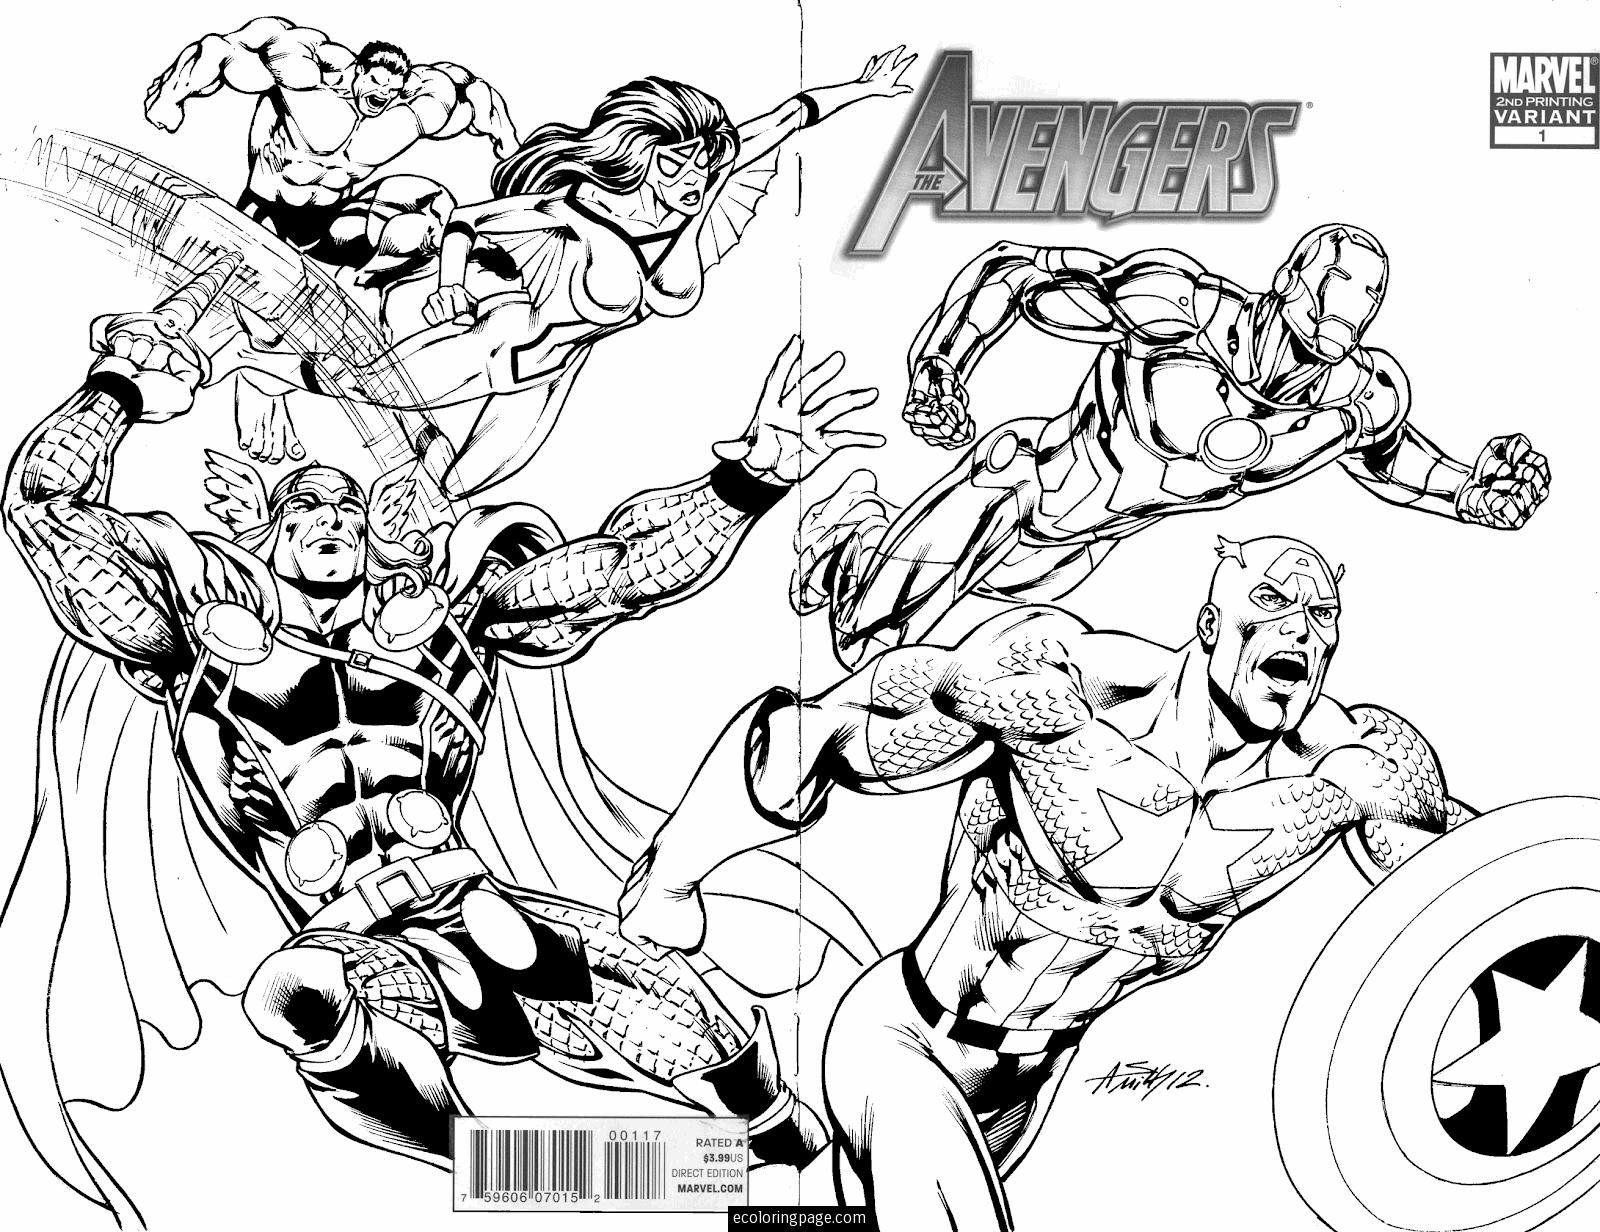 Marvel Lego Superheroes Colouring Pages 2 Marvel Coloring Pages Prints And Colors Superhero Coloring Pages Avengers Coloring Superhero Coloring